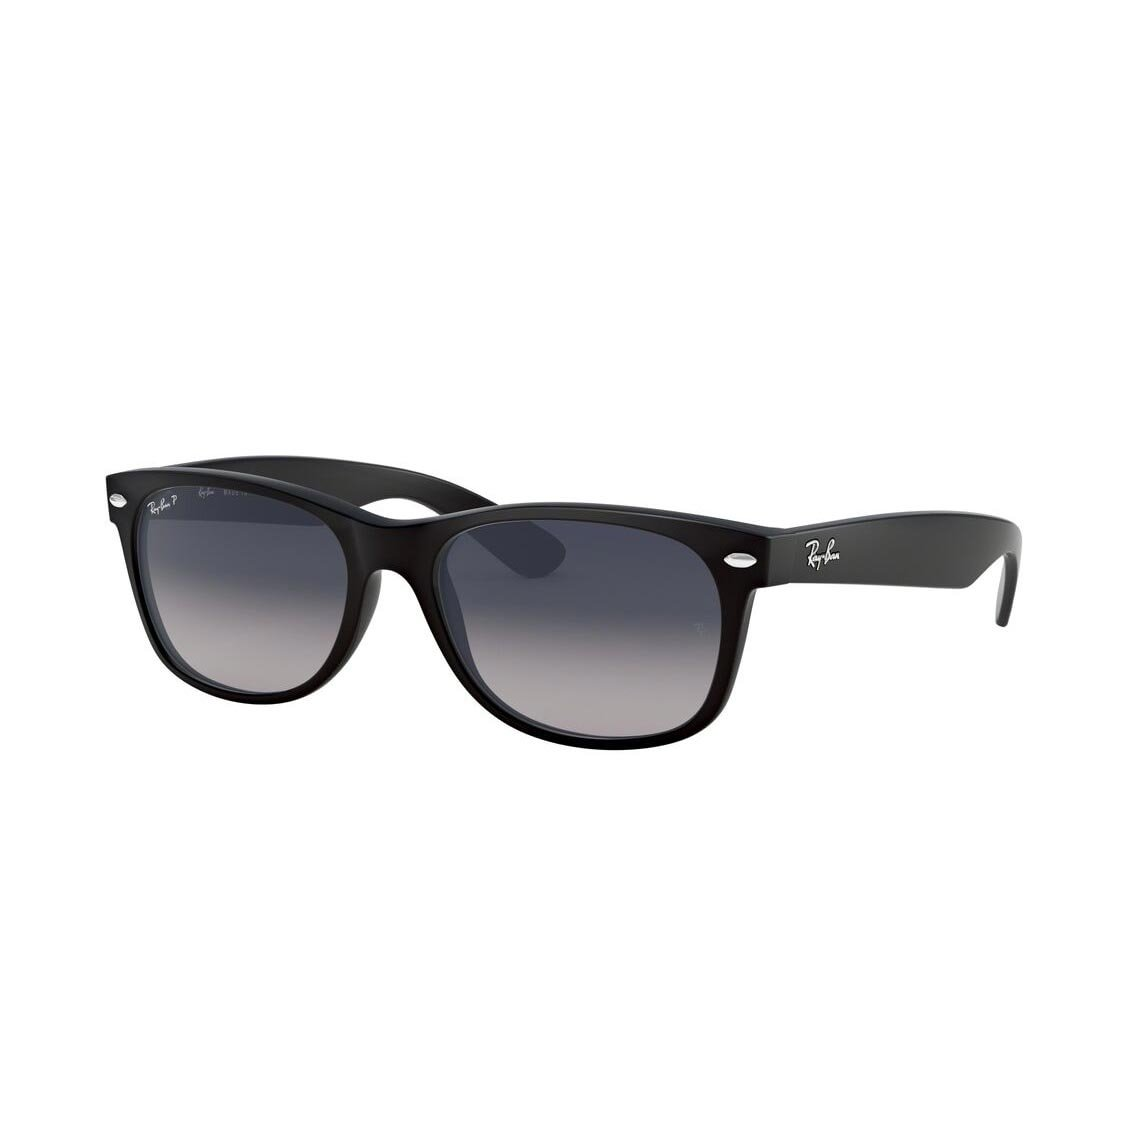 Ray-Ban New Wayfarer RB2132 601S78 55